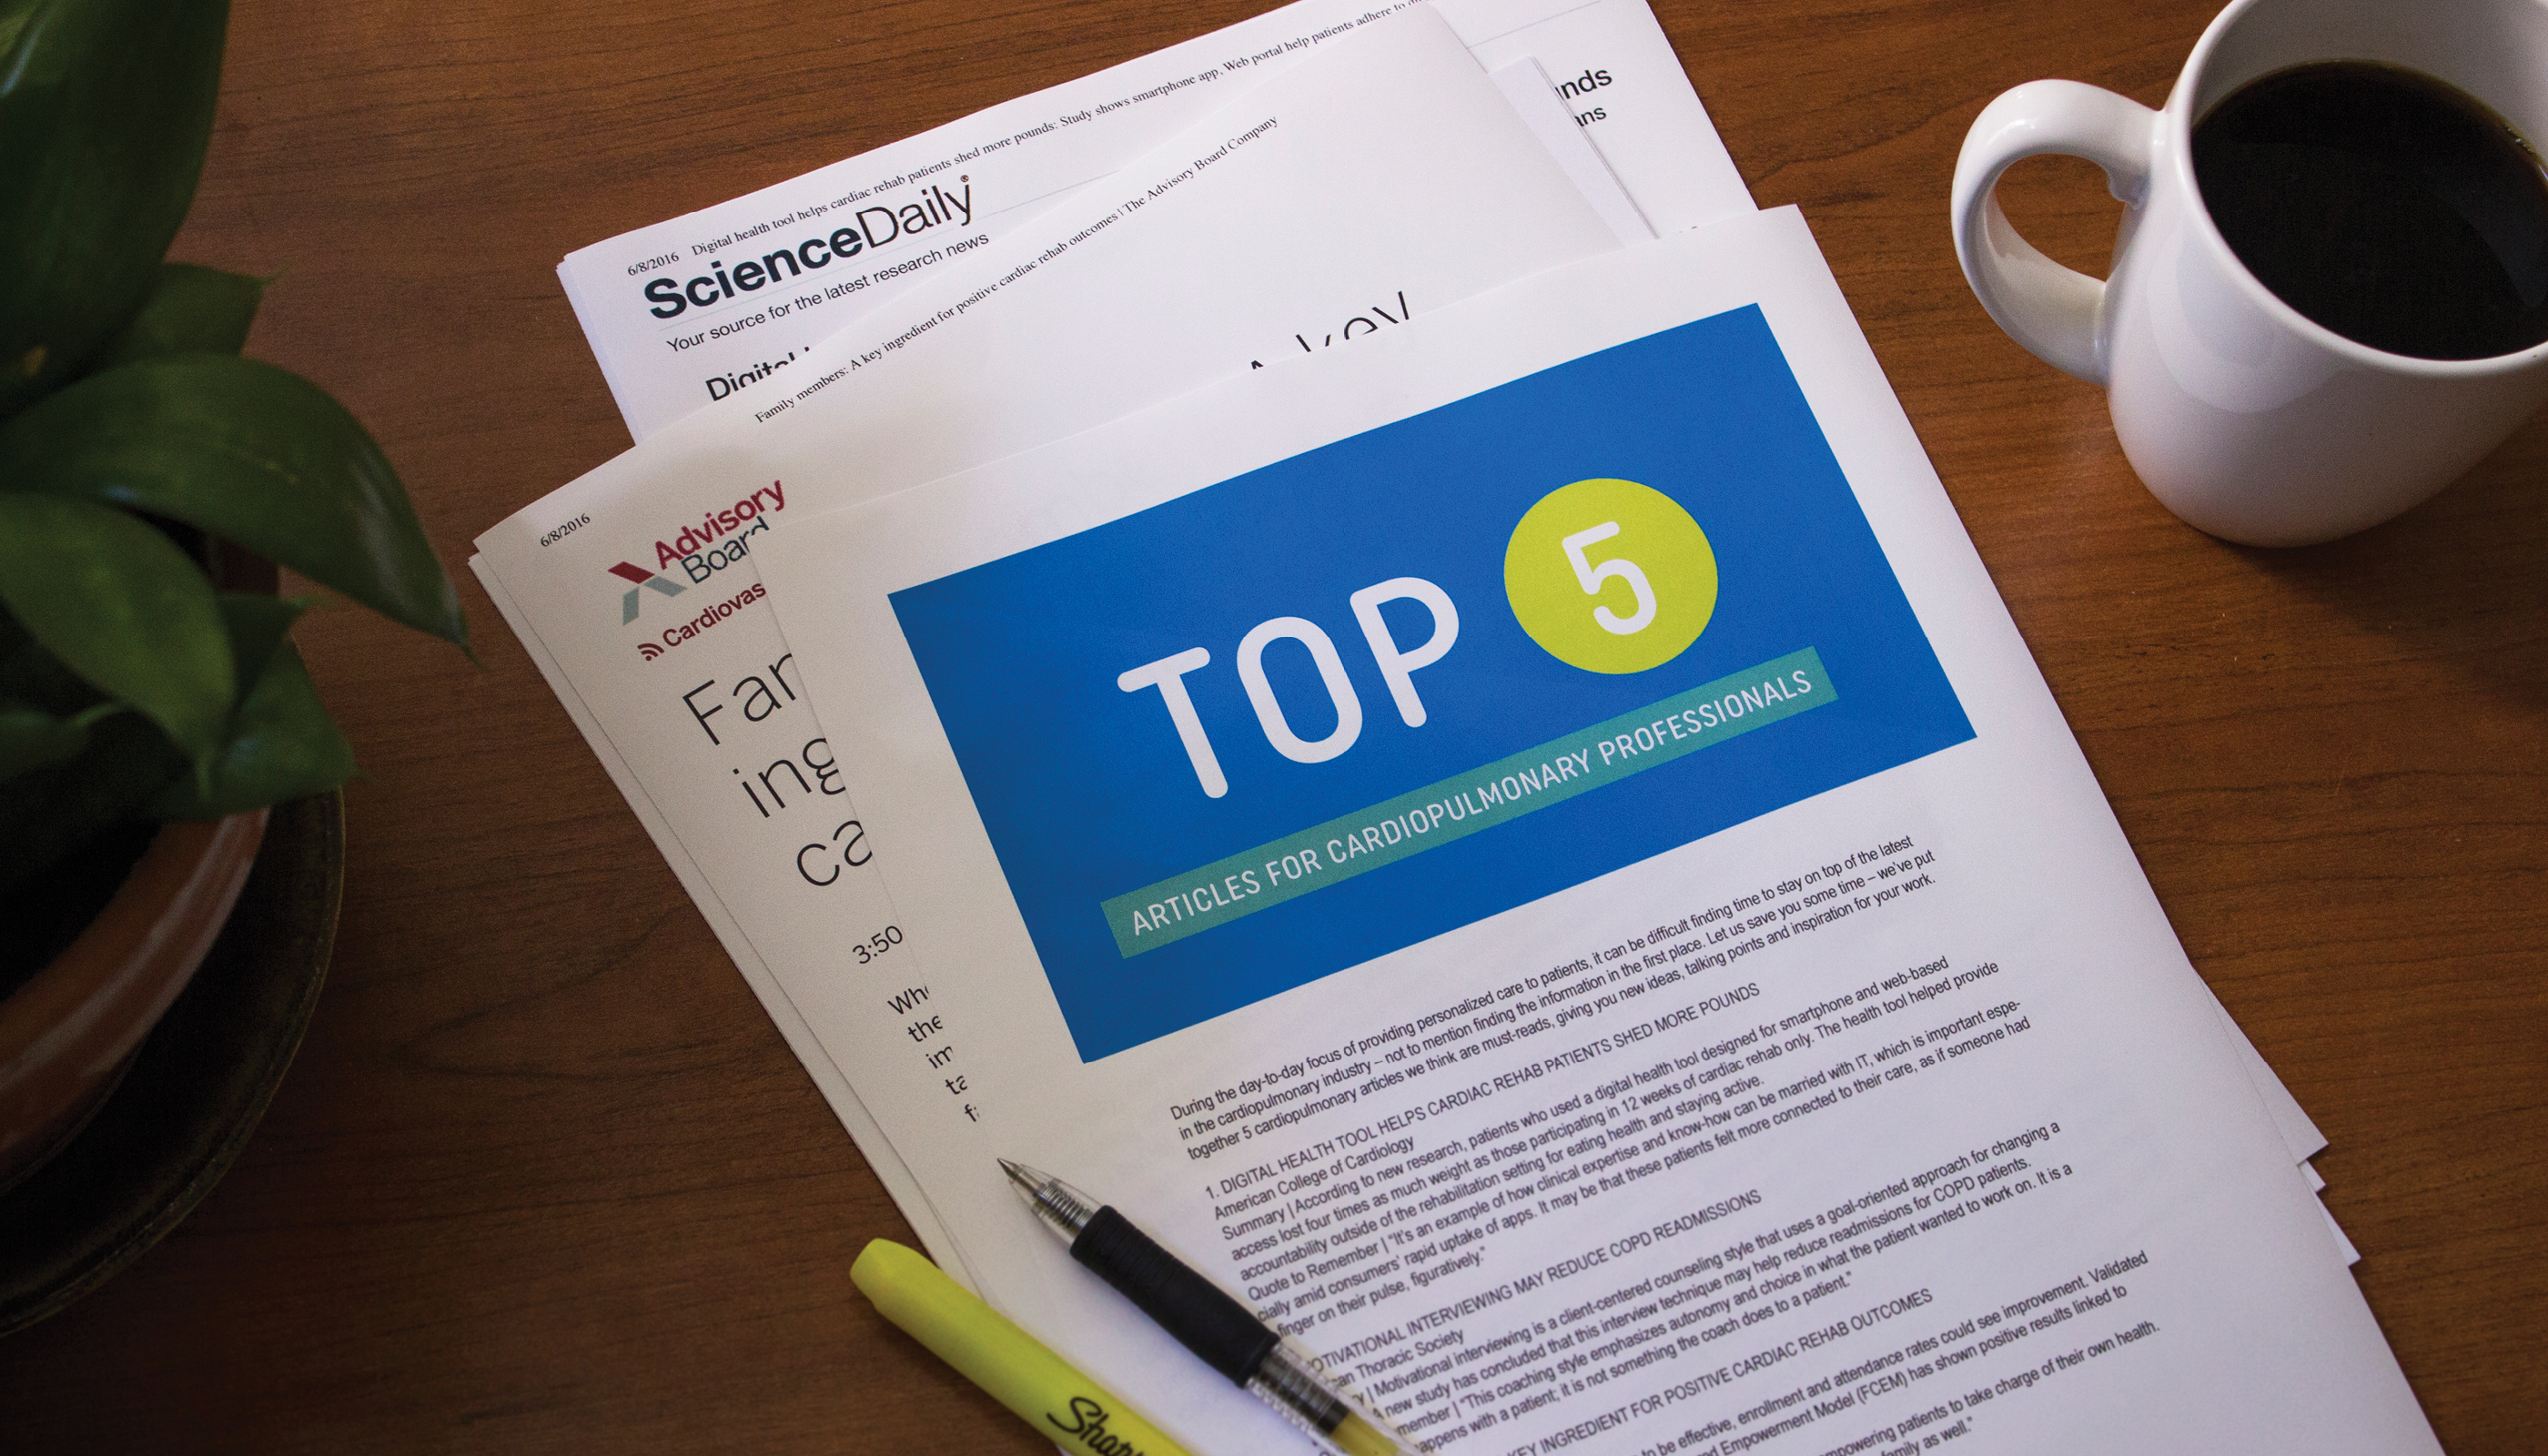 Top 5 Articles for Cardiopulmonary Professionals in June